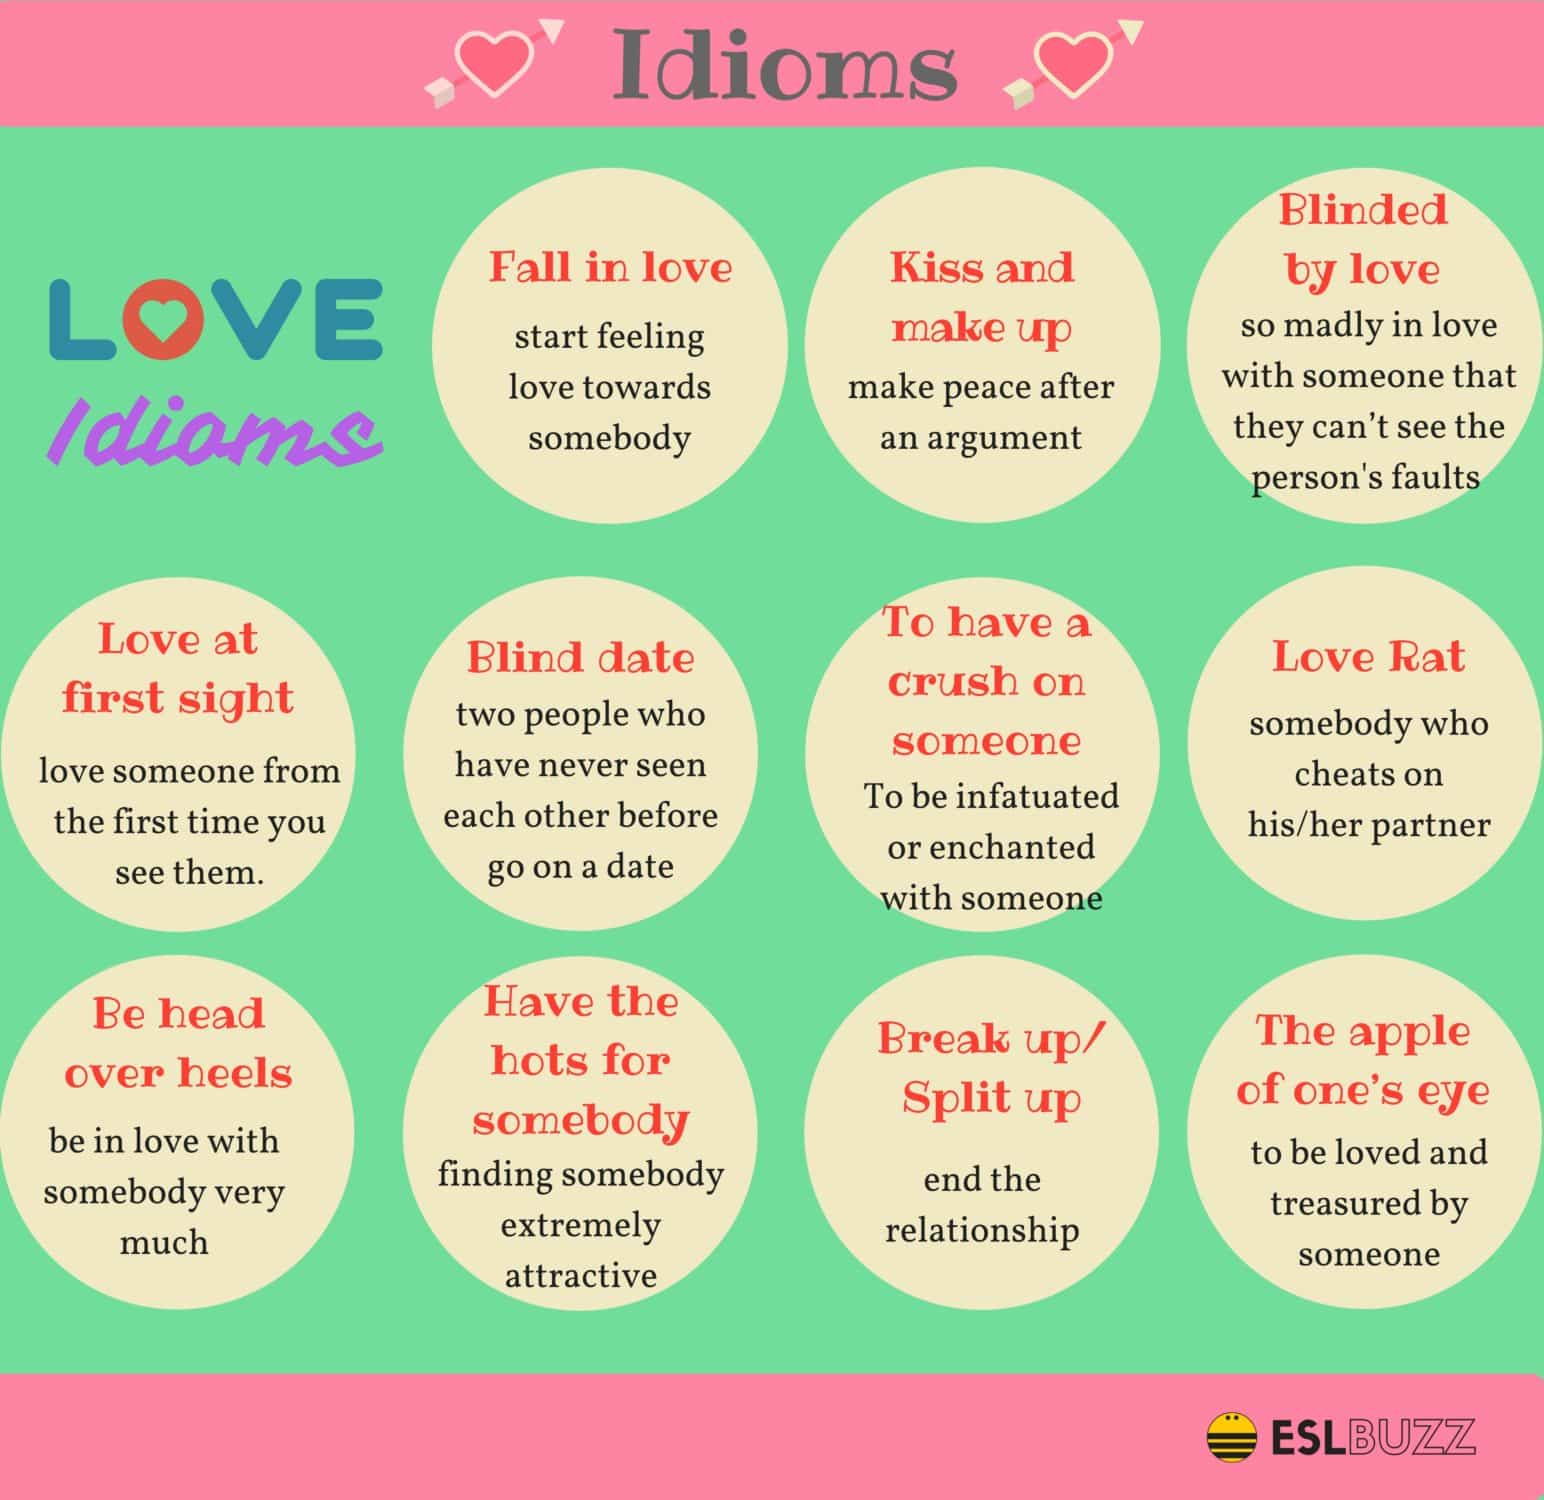 List of Common Idioms Arranged in Categories 20